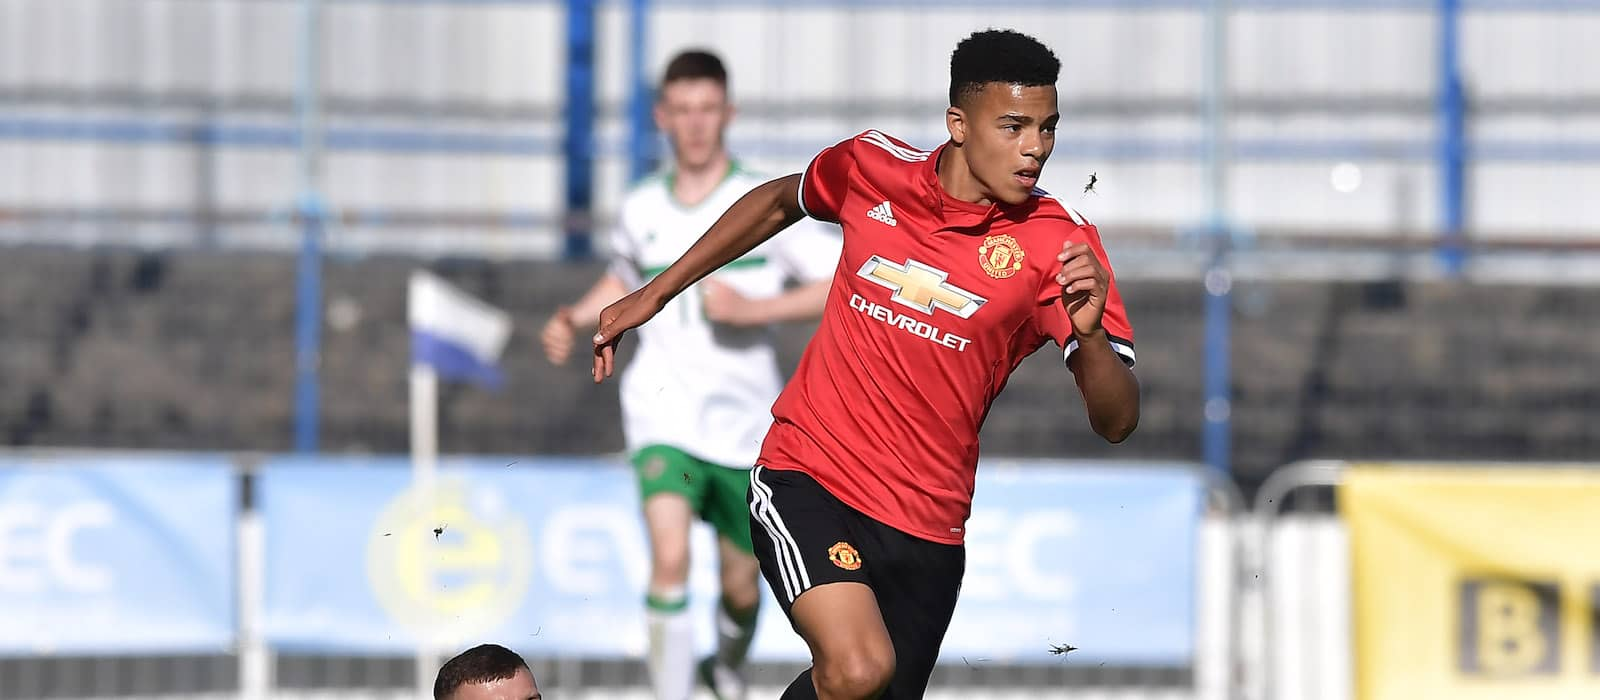 Manchester United youngster Mason Greenwood set to join pre-season tour – report